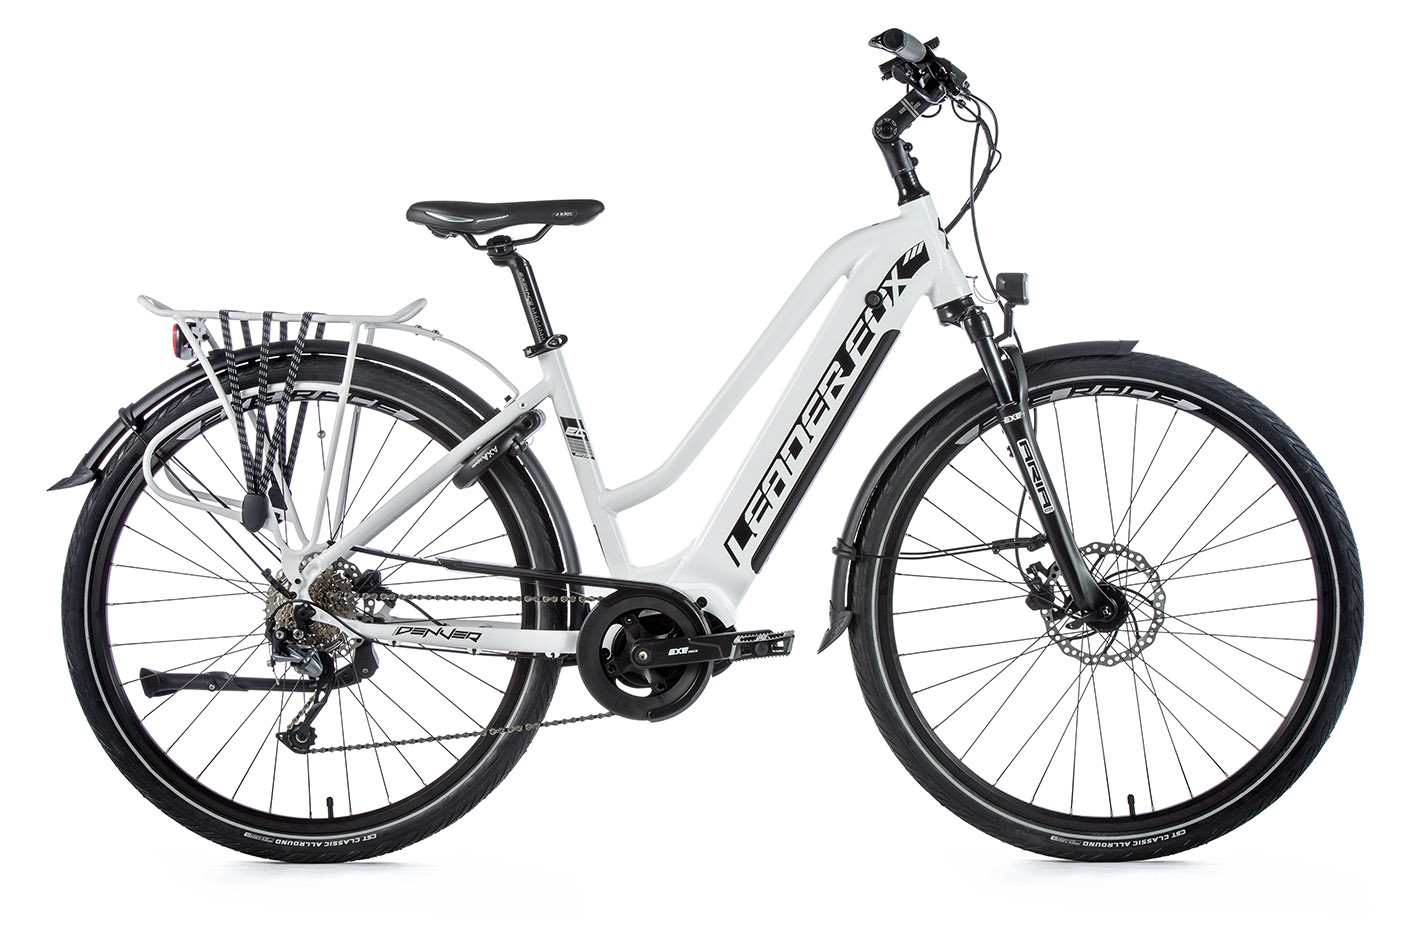 Bicicleta electrica Trekking Leader Fox Denver Lady, 2020